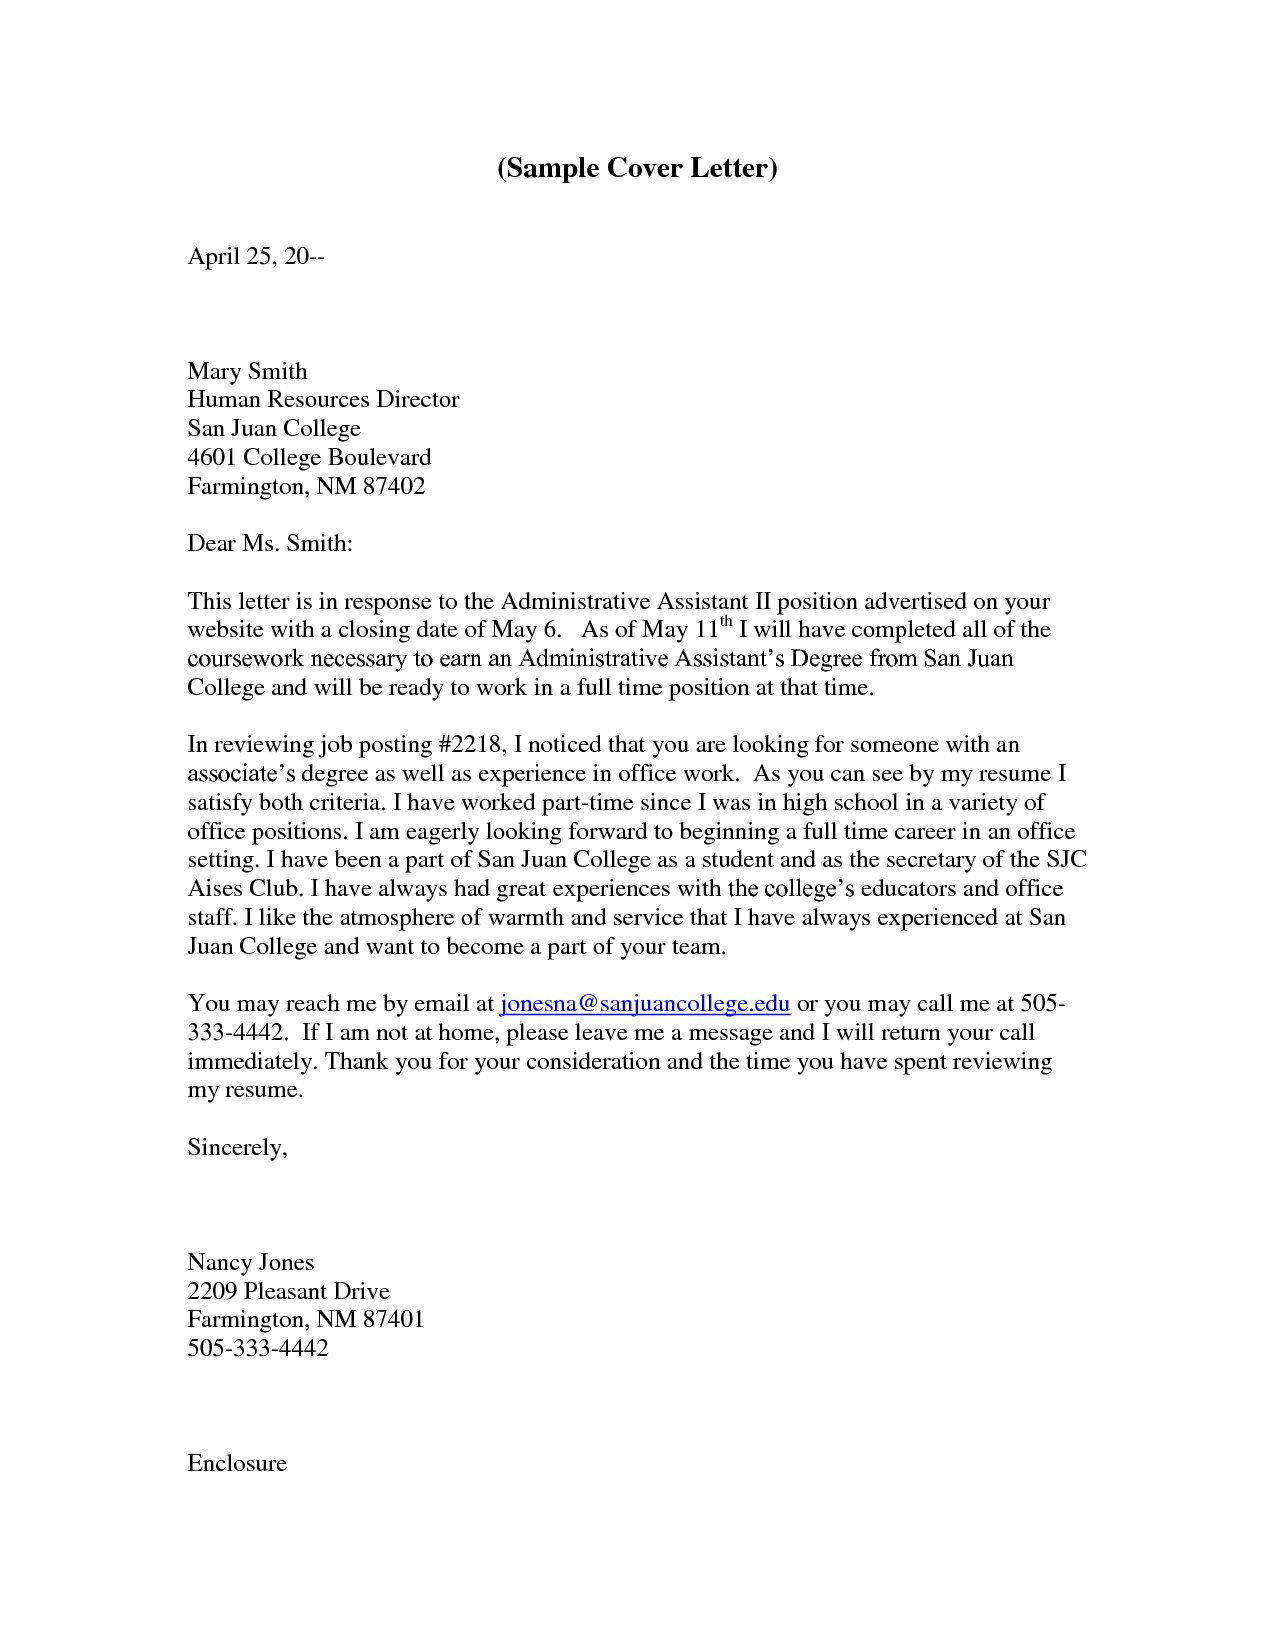 Hvac Cover Letter Template - 30 Lovely Examples Cover Letters for Administrative assistant